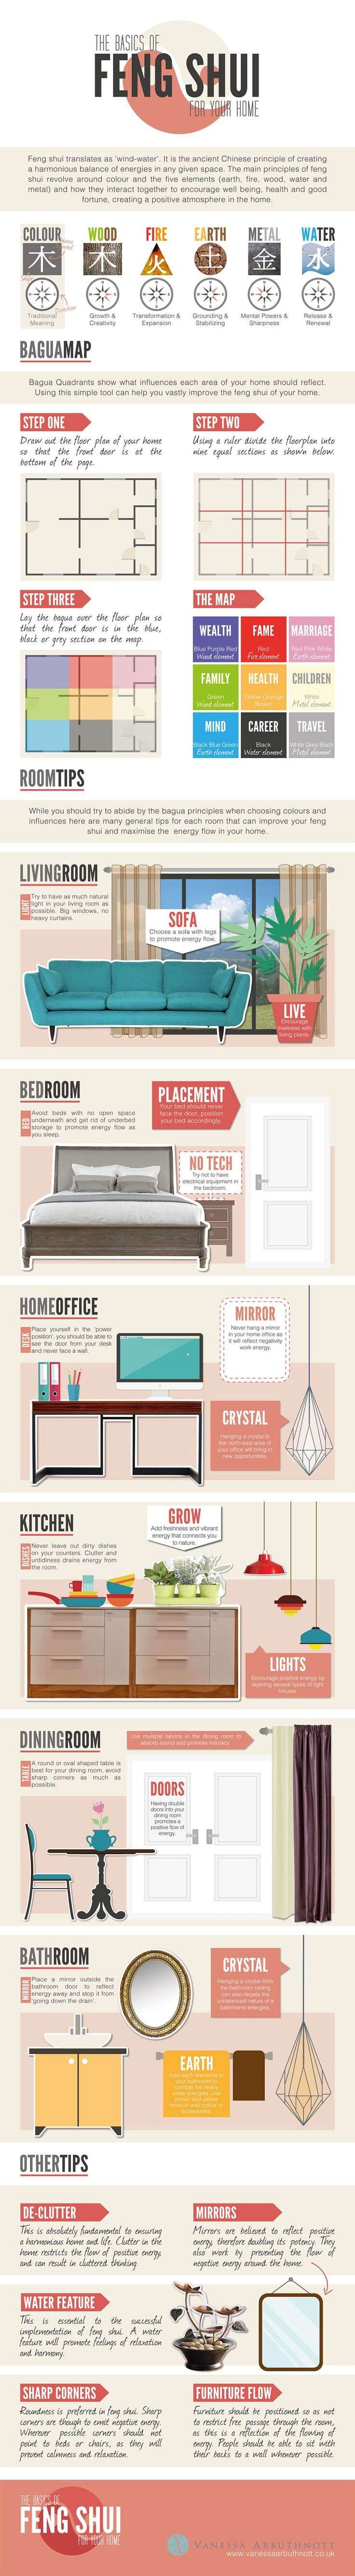 best ideas para interior images on pinterest home ideas home